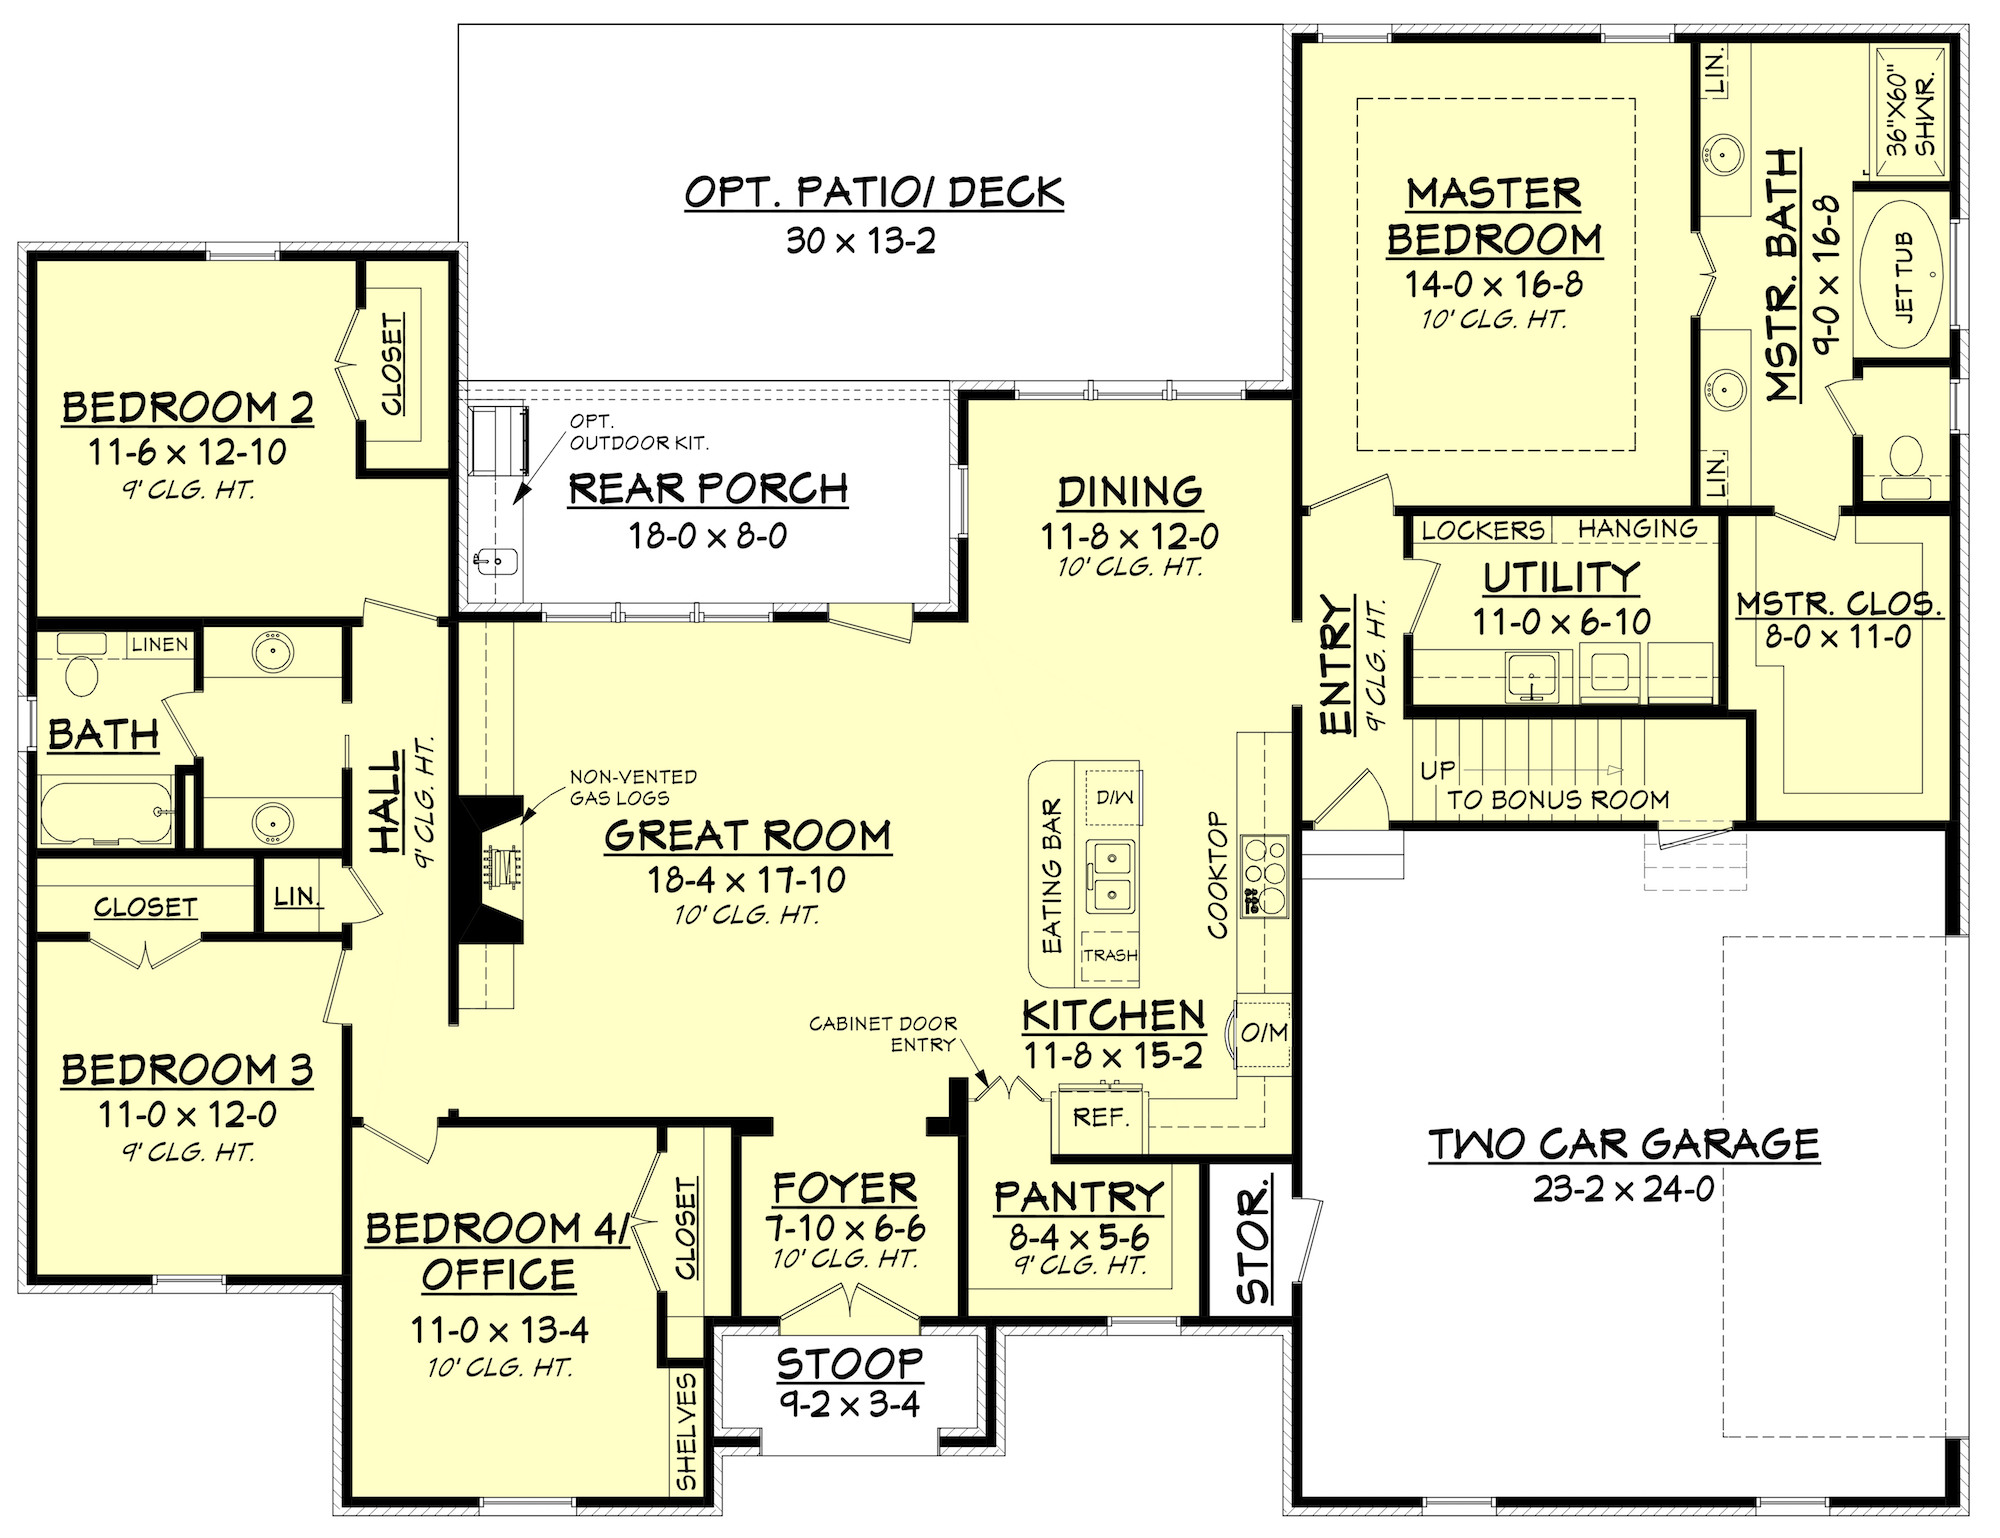 Acadian house plan 142 1154 4 bedrm 2210 sq ft home plan for Homes and floor plans